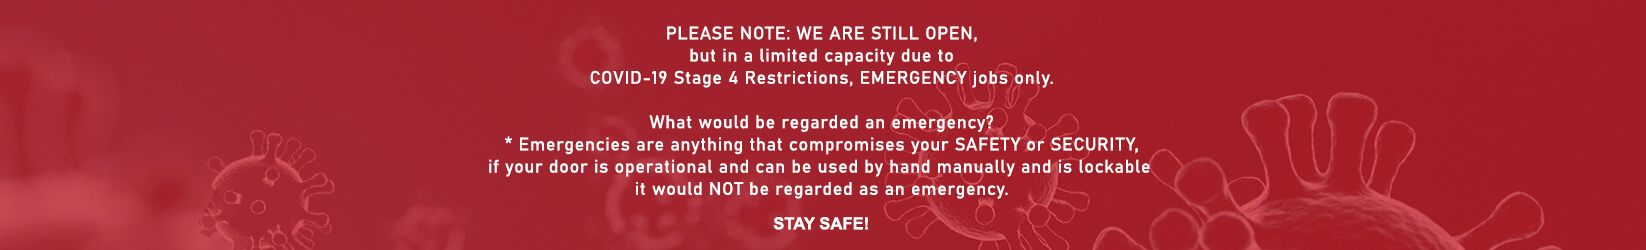 Industrial Roller Door Repair - Covid-19 Notice